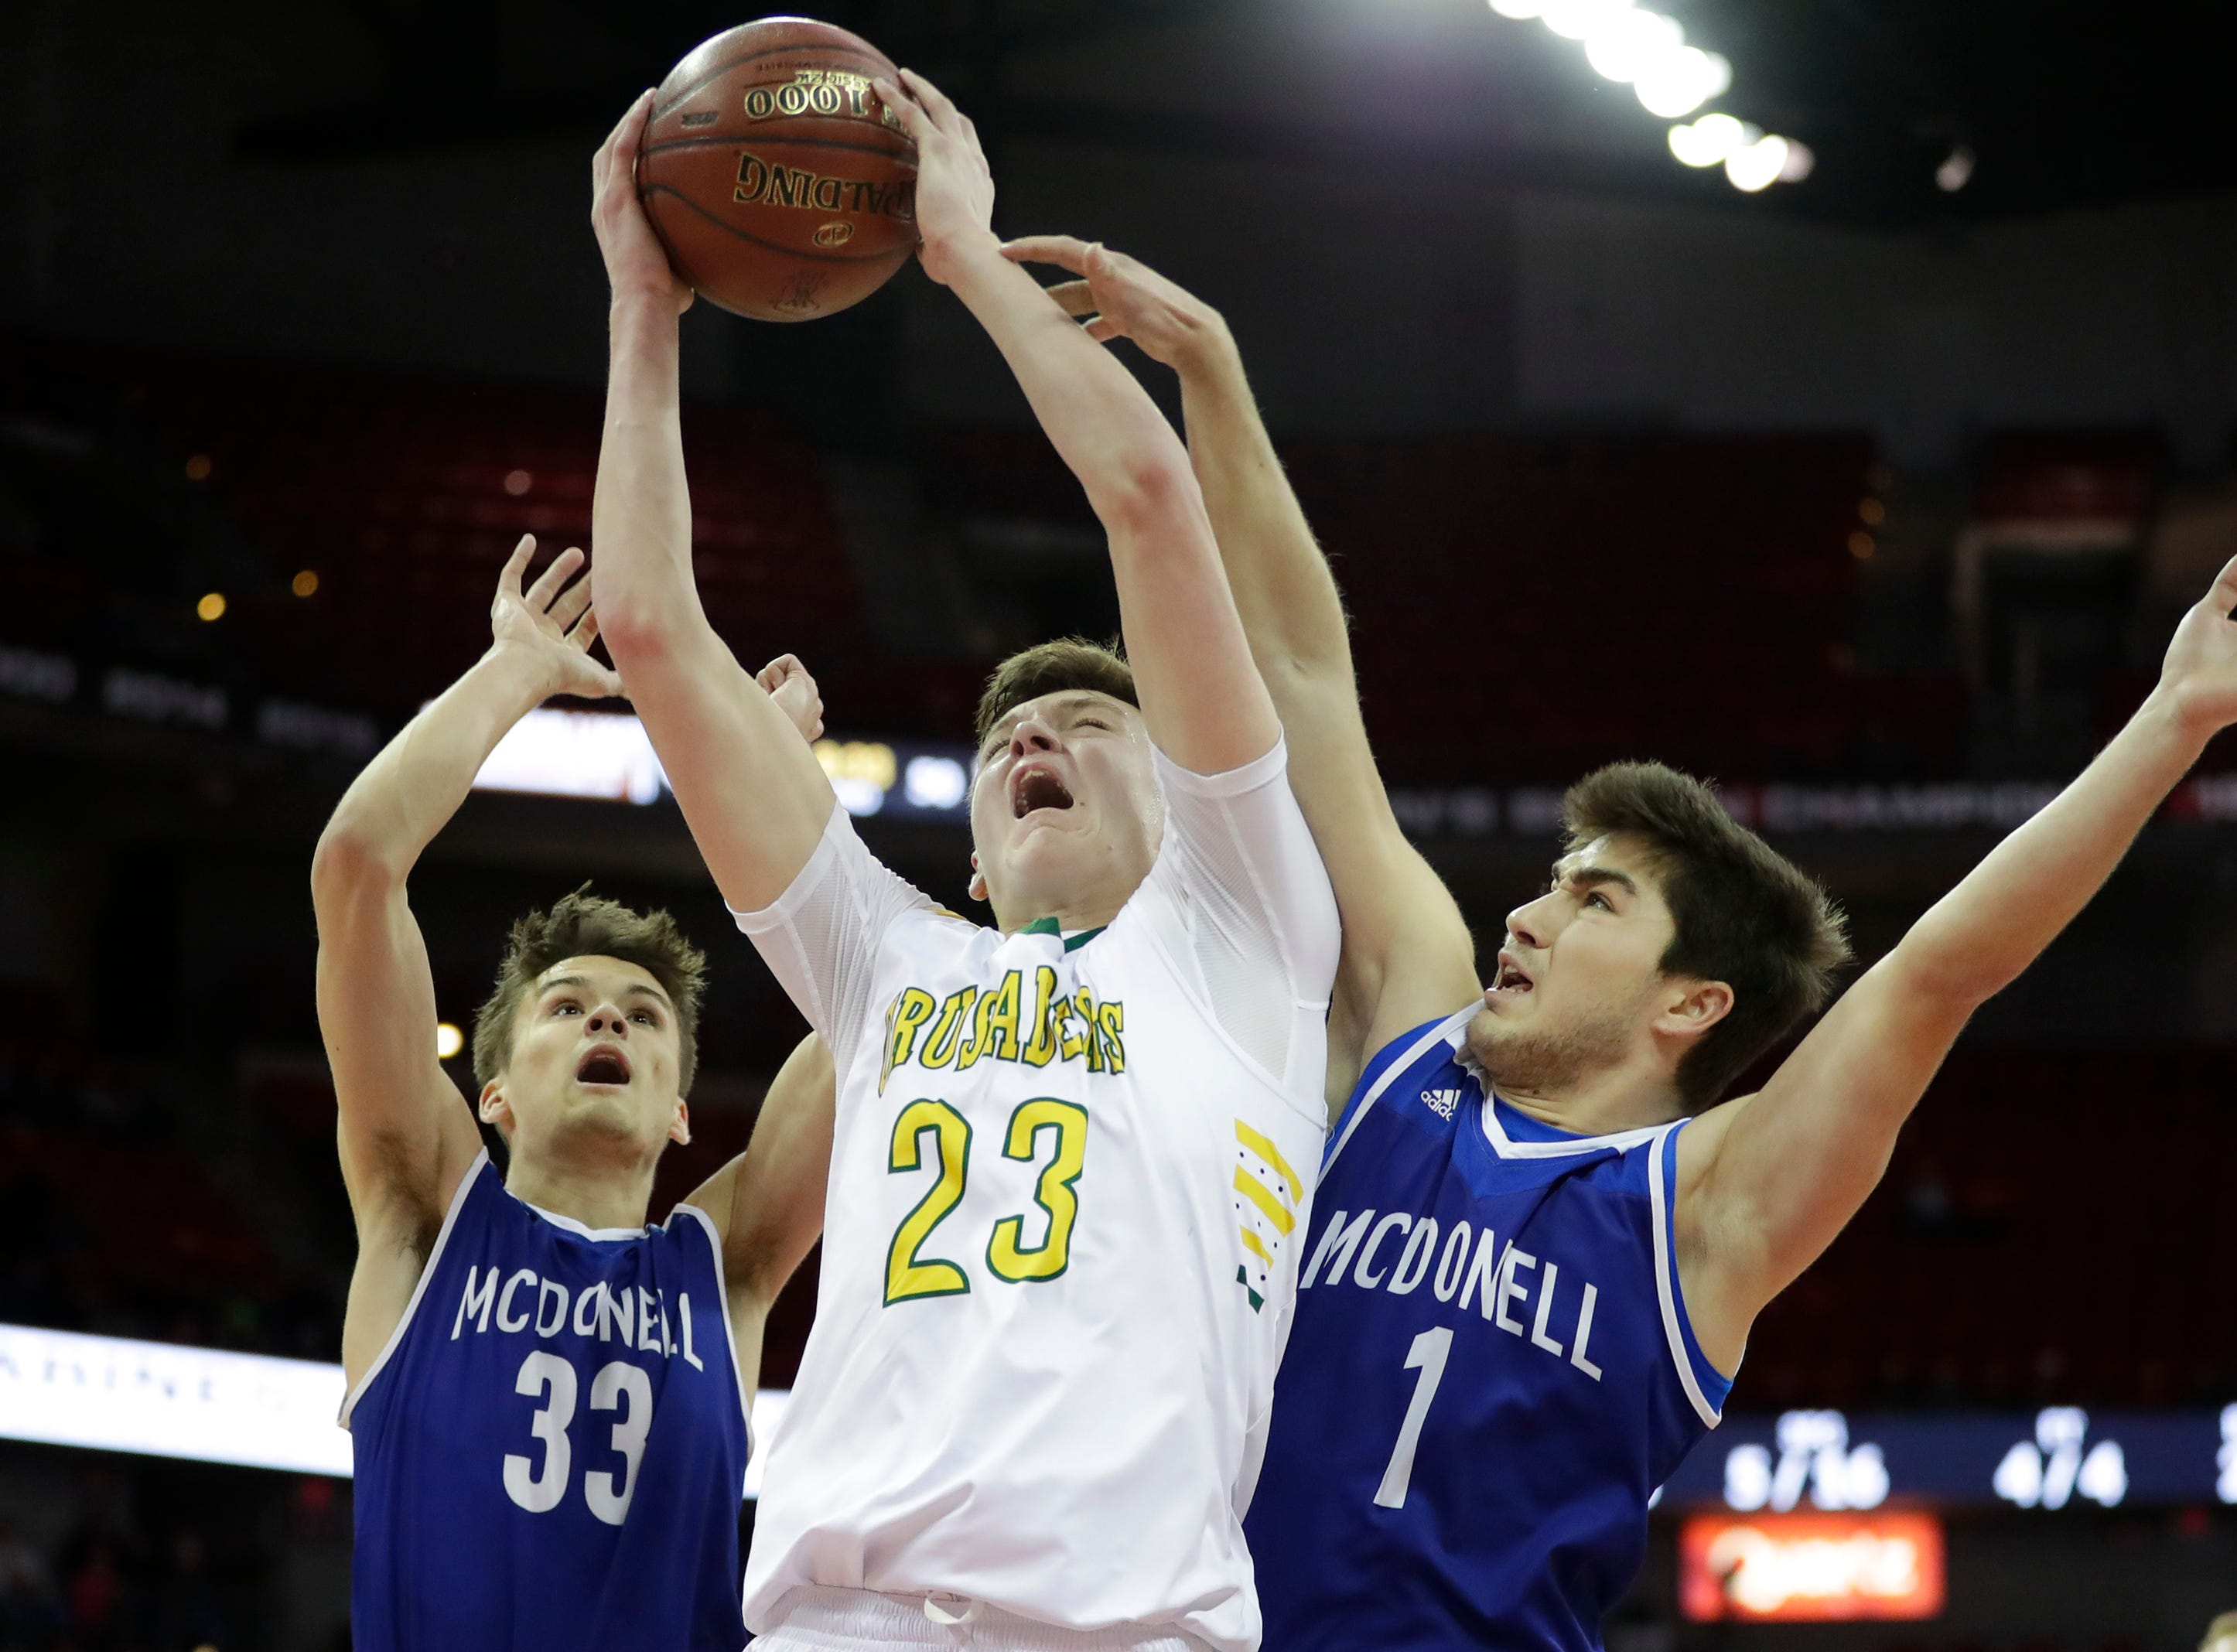 Sheboygan Area Lutheran High School's Jacob Ognacevic (23) is fouled as he looks to shoot against McDonell Central Catholic High School during their WIAA Division 5 boys basketball state semifinal at the Kohl Center Friday, March 15, 2019, in Madison, Wis.